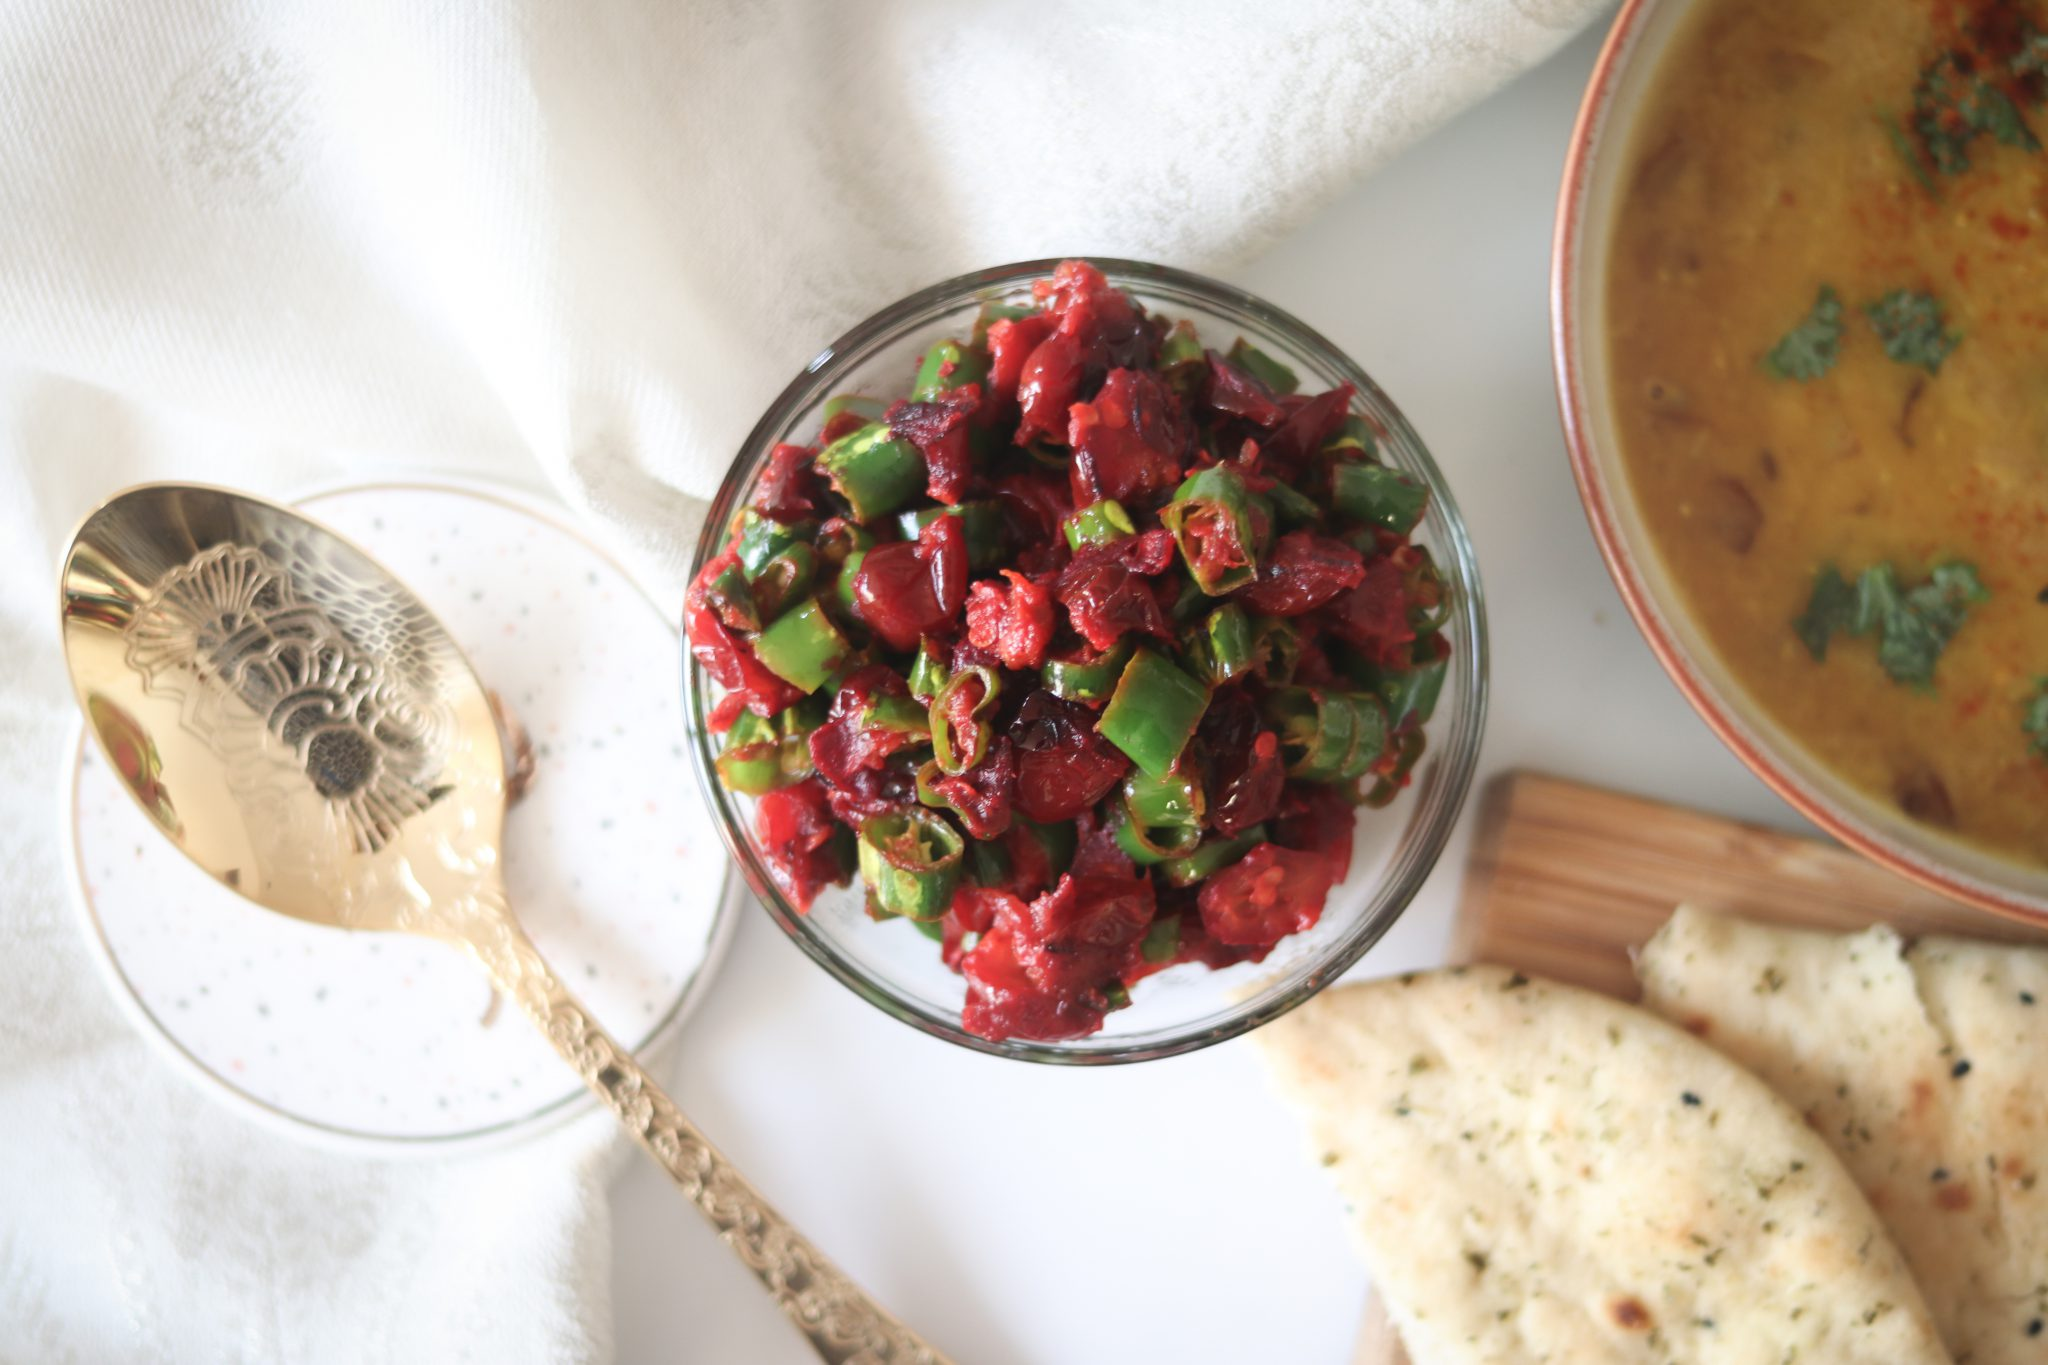 Karonde mirchi/ Sautéed Cranberry with green chillies